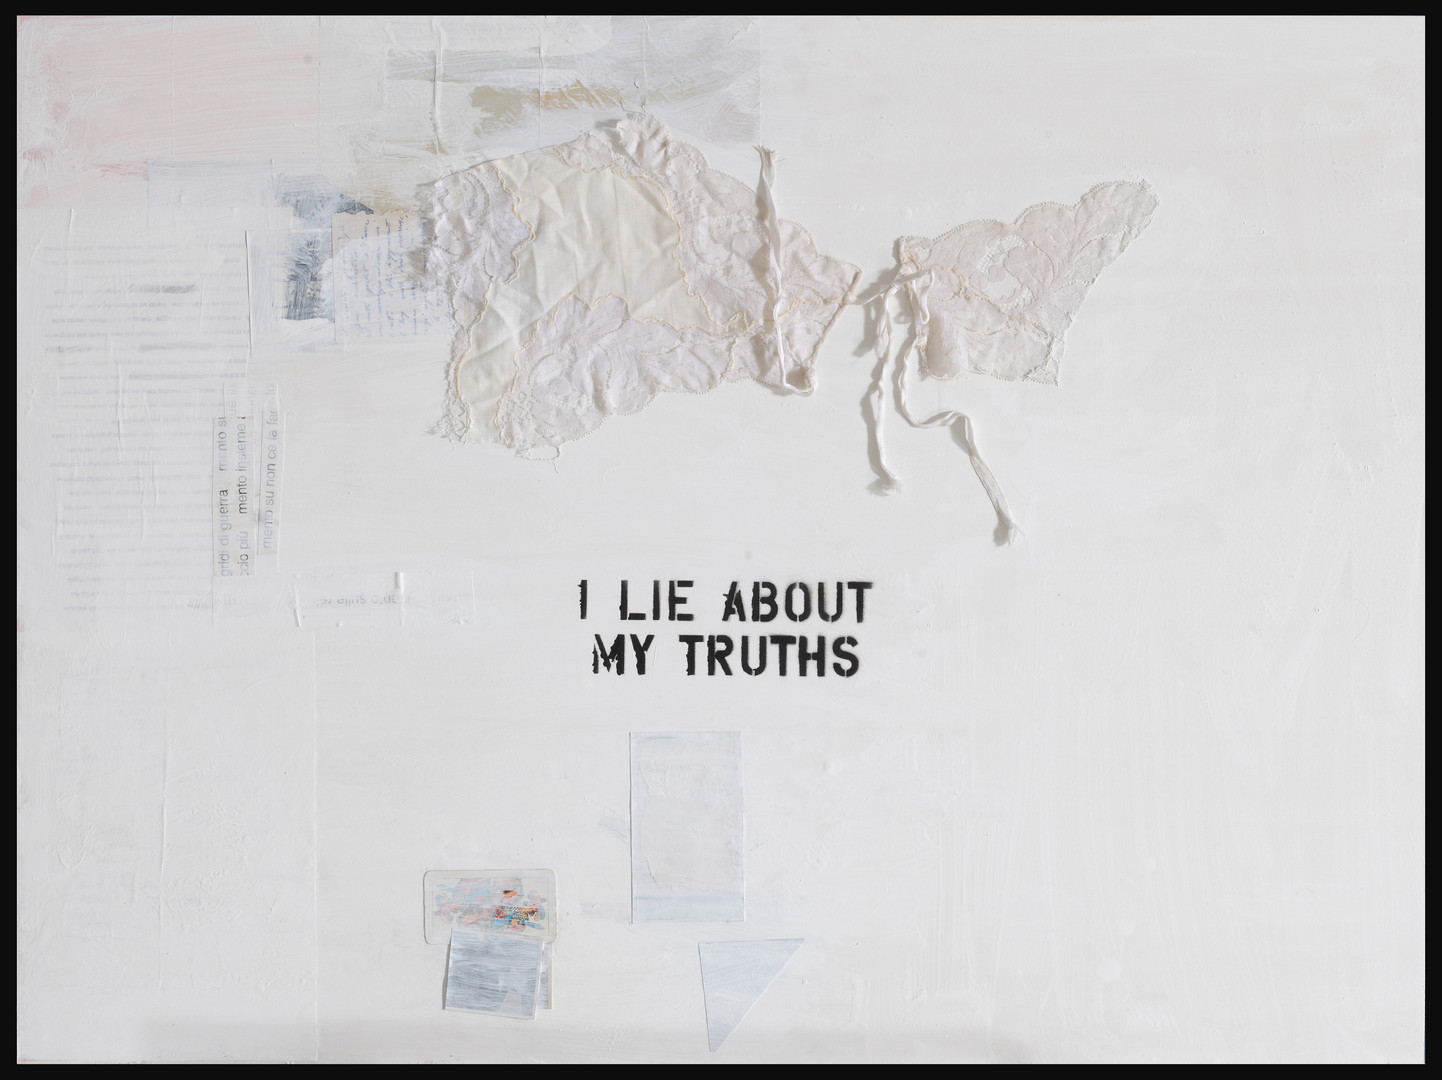 I Lie About My truths - 2008